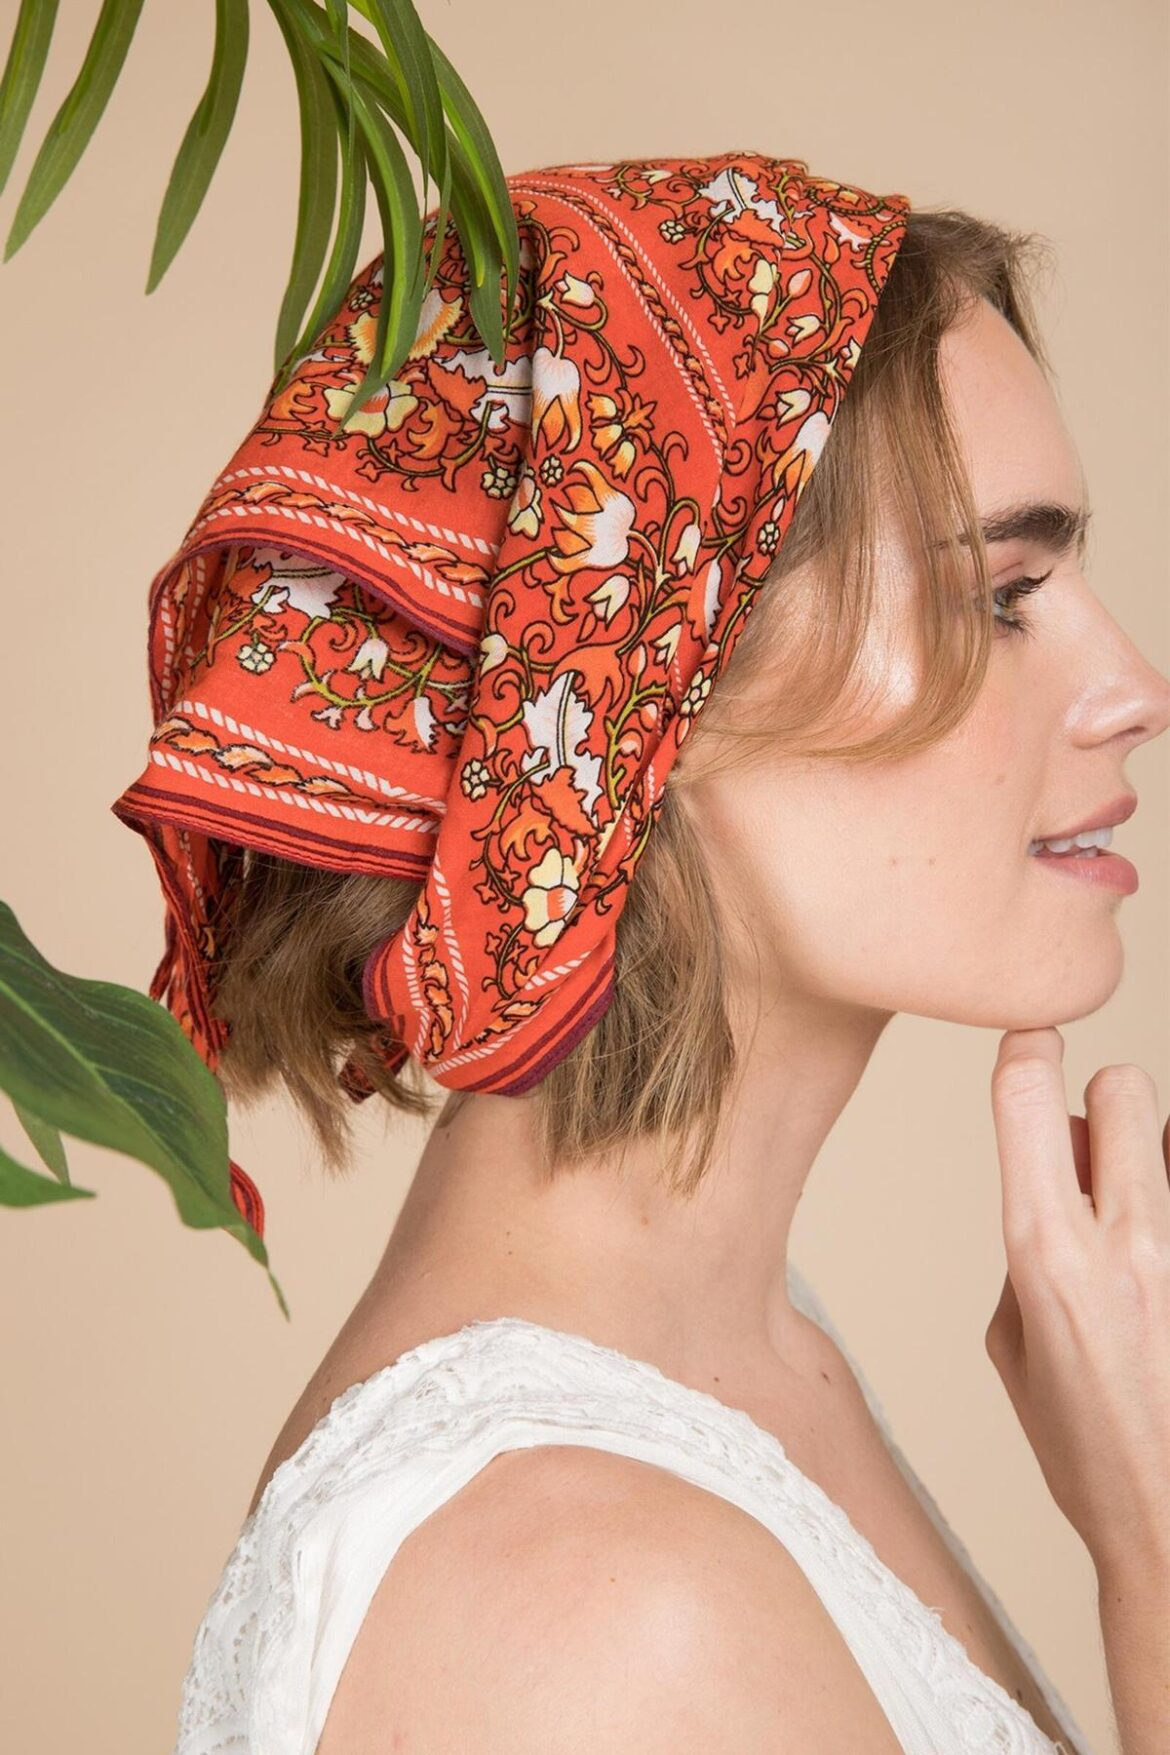 Head Scarf Styles for Bad Hair Days and Beyond